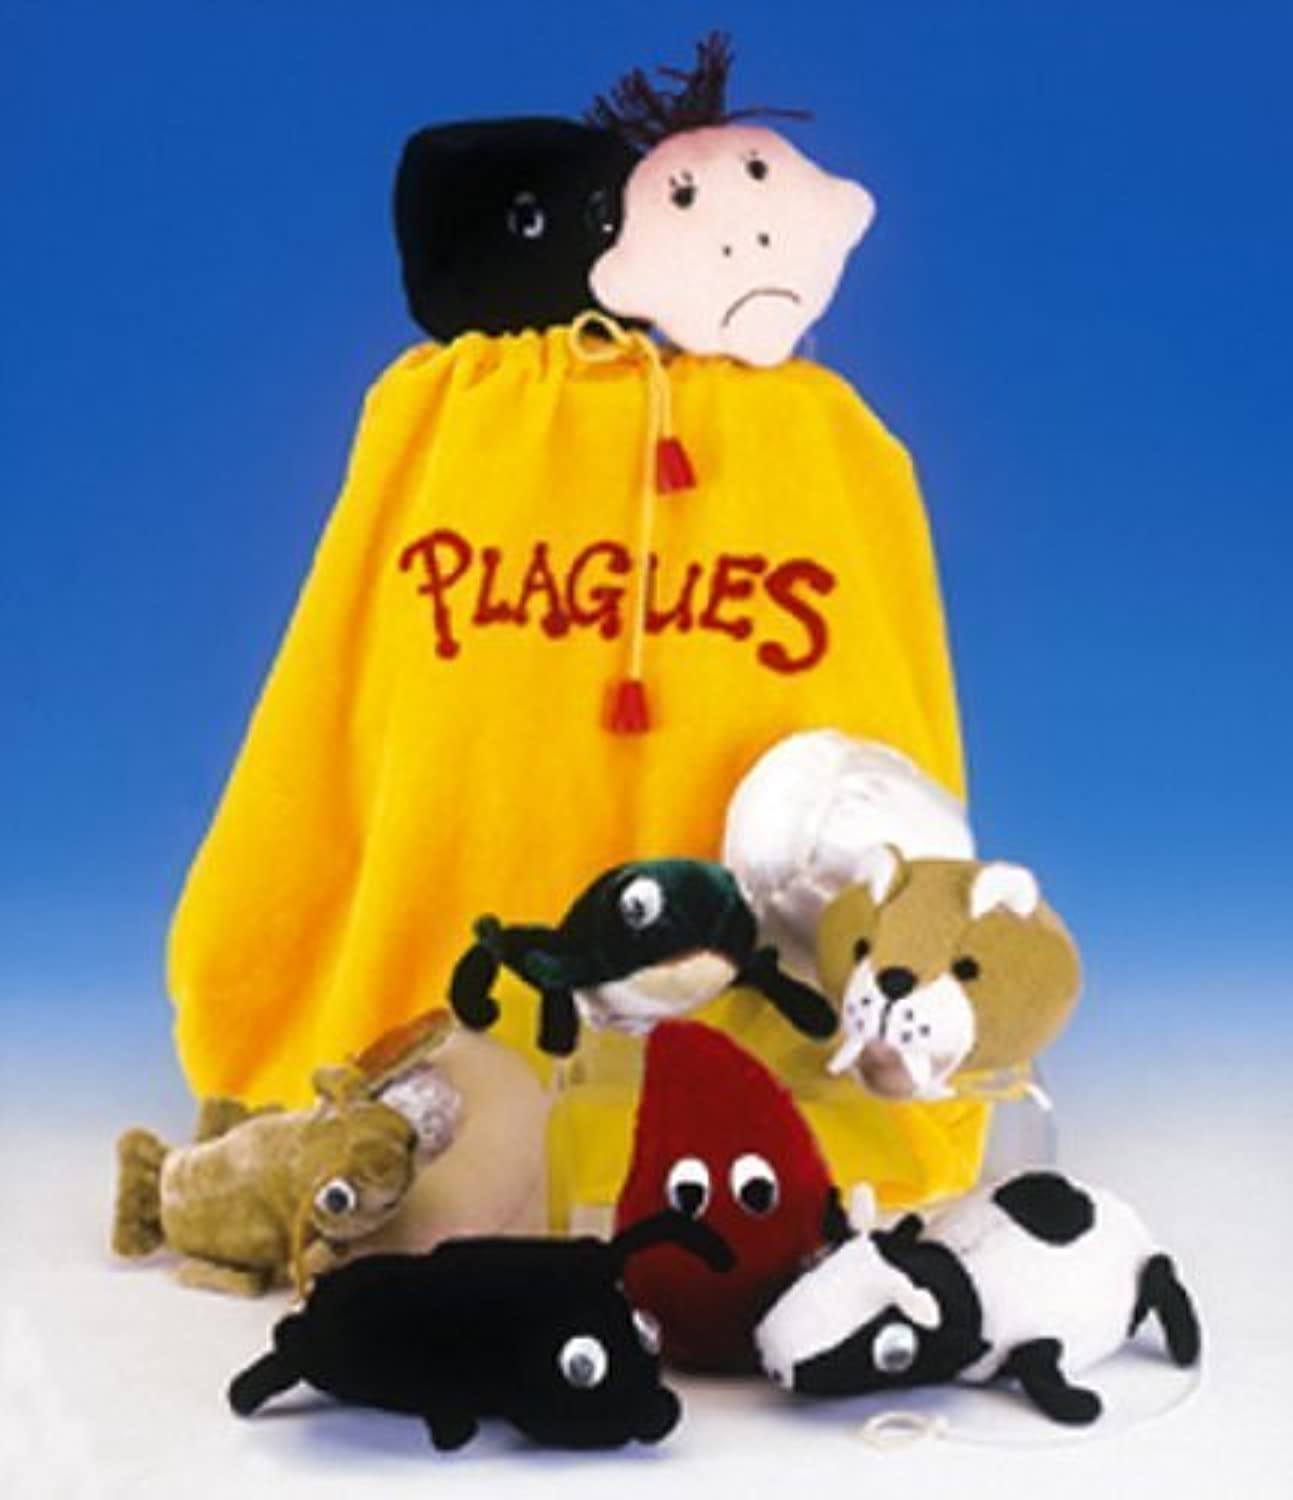 Adorable Set of Ten Plush Passover Plagues Representations, with Convenient Carrying Drawstring Bag by copa